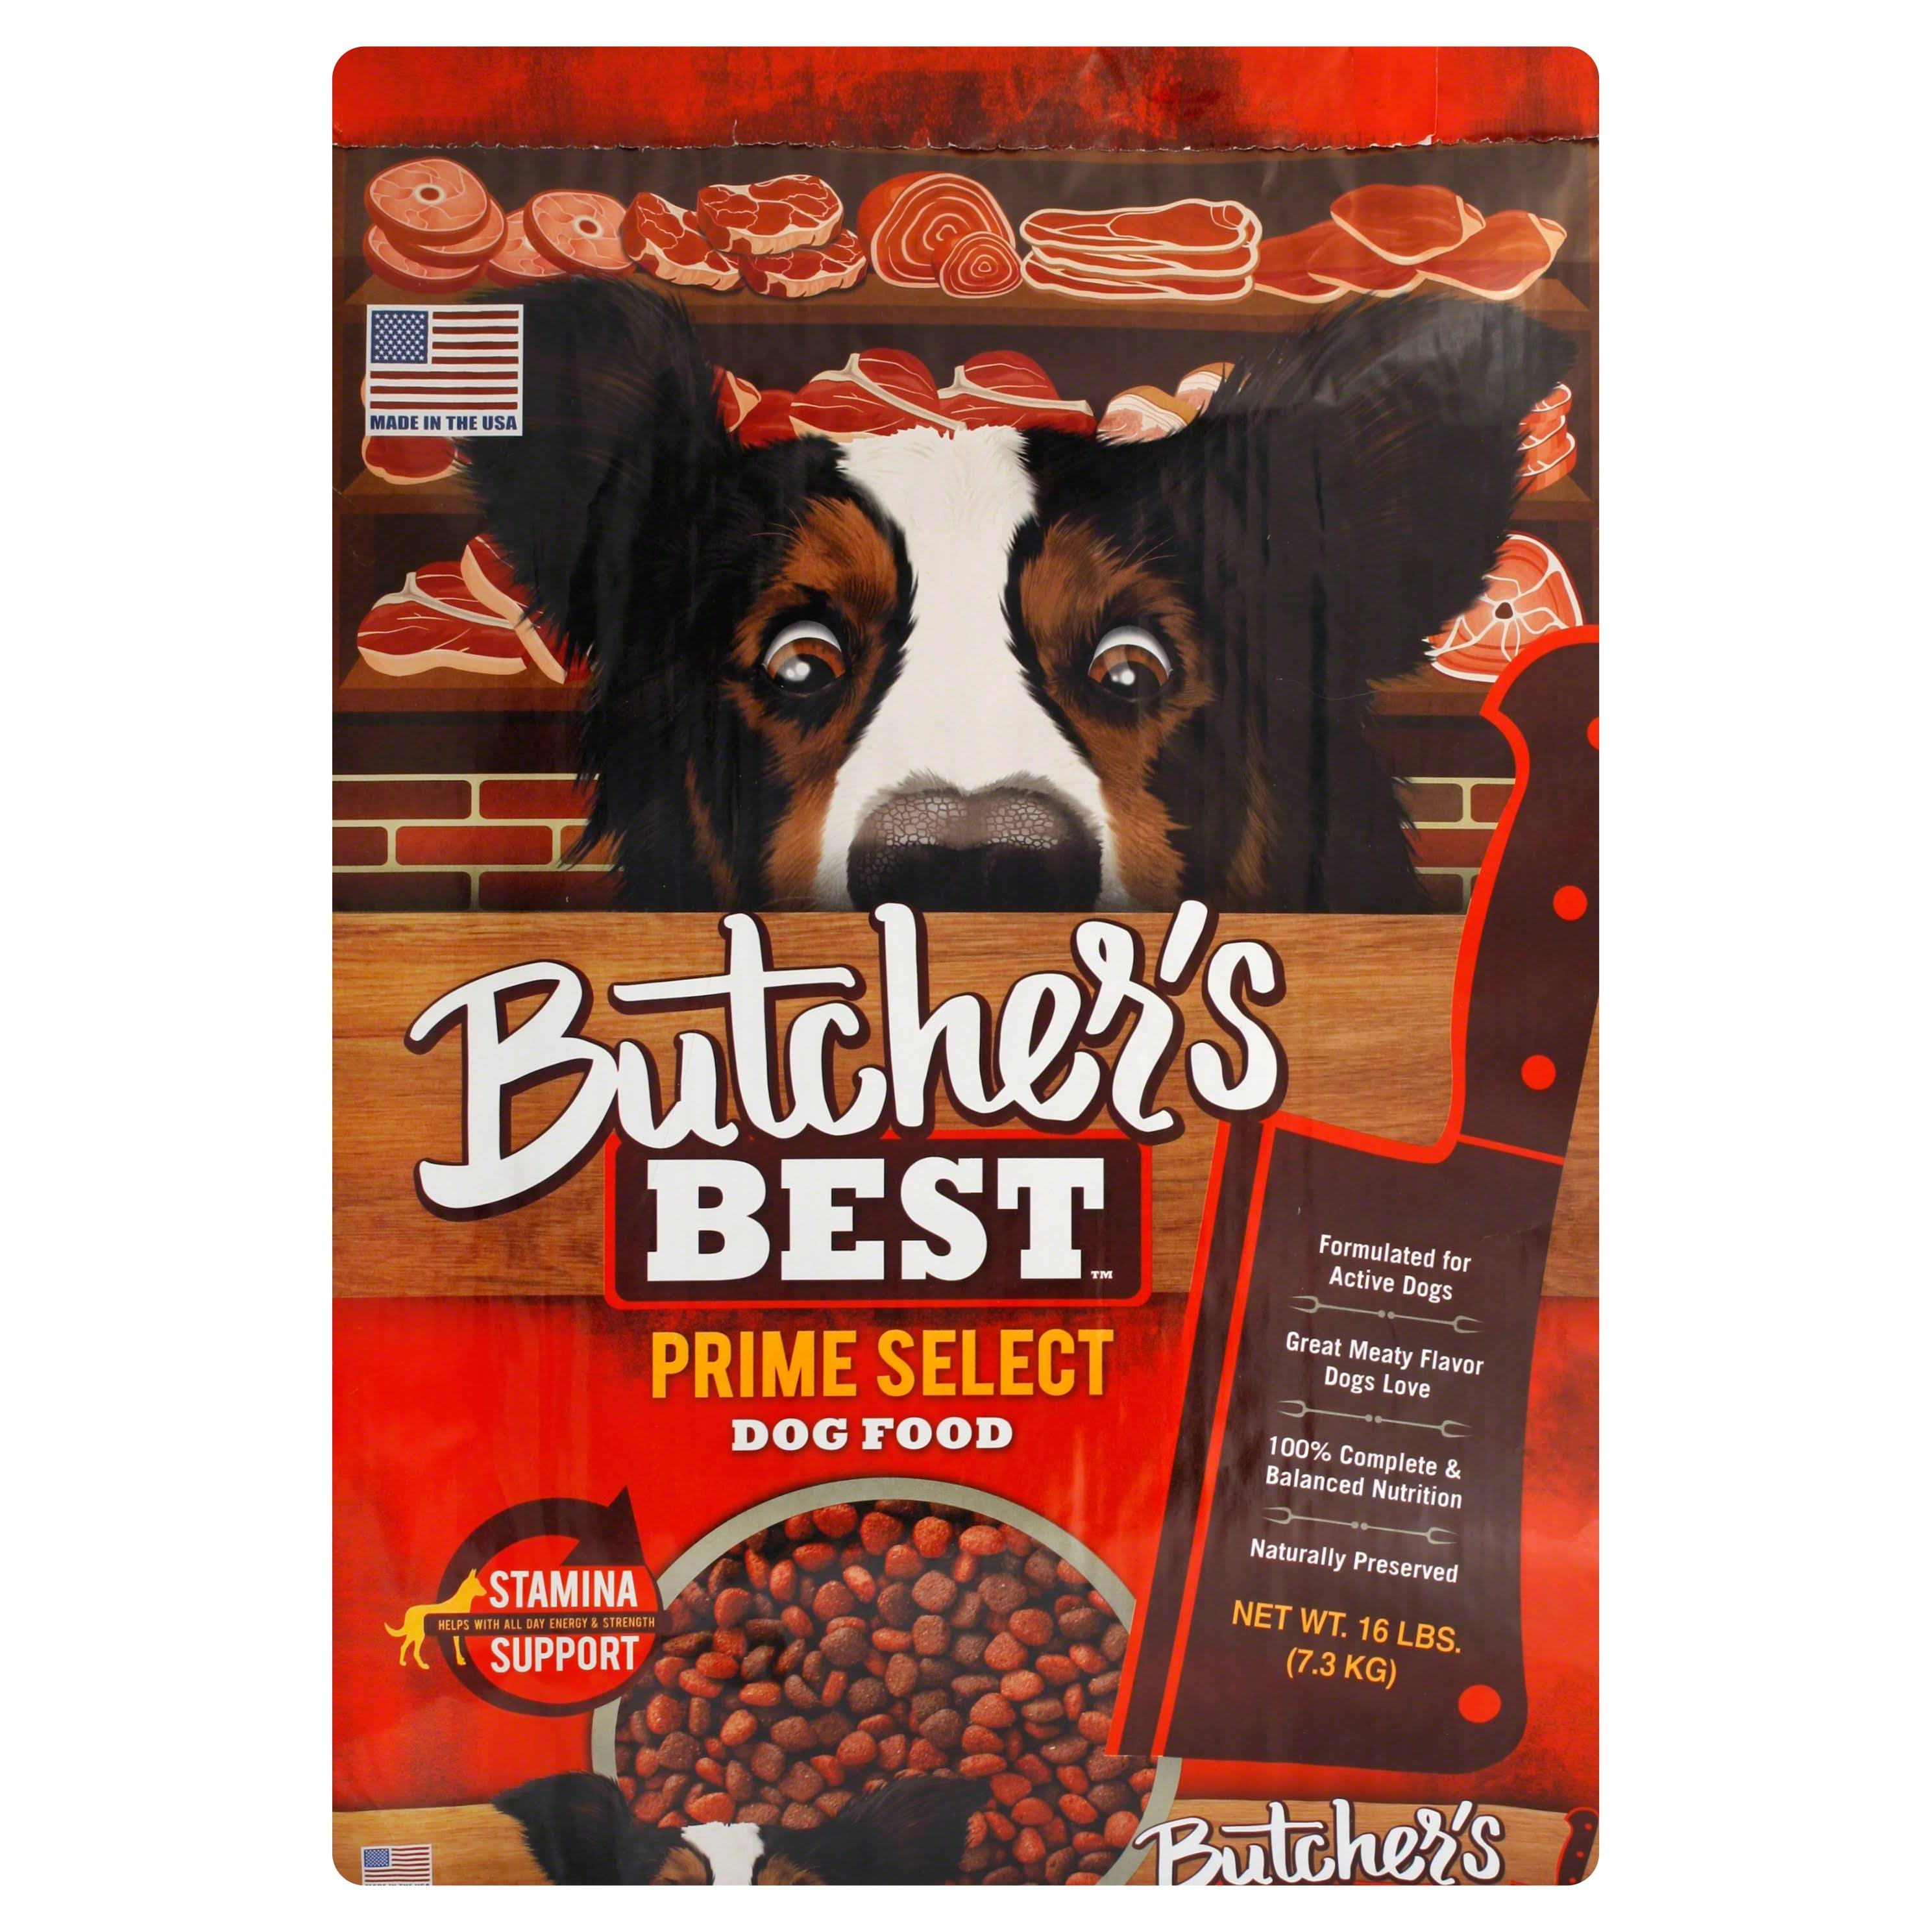 Butchers Best Dog Food, Prime Select - 16 lb